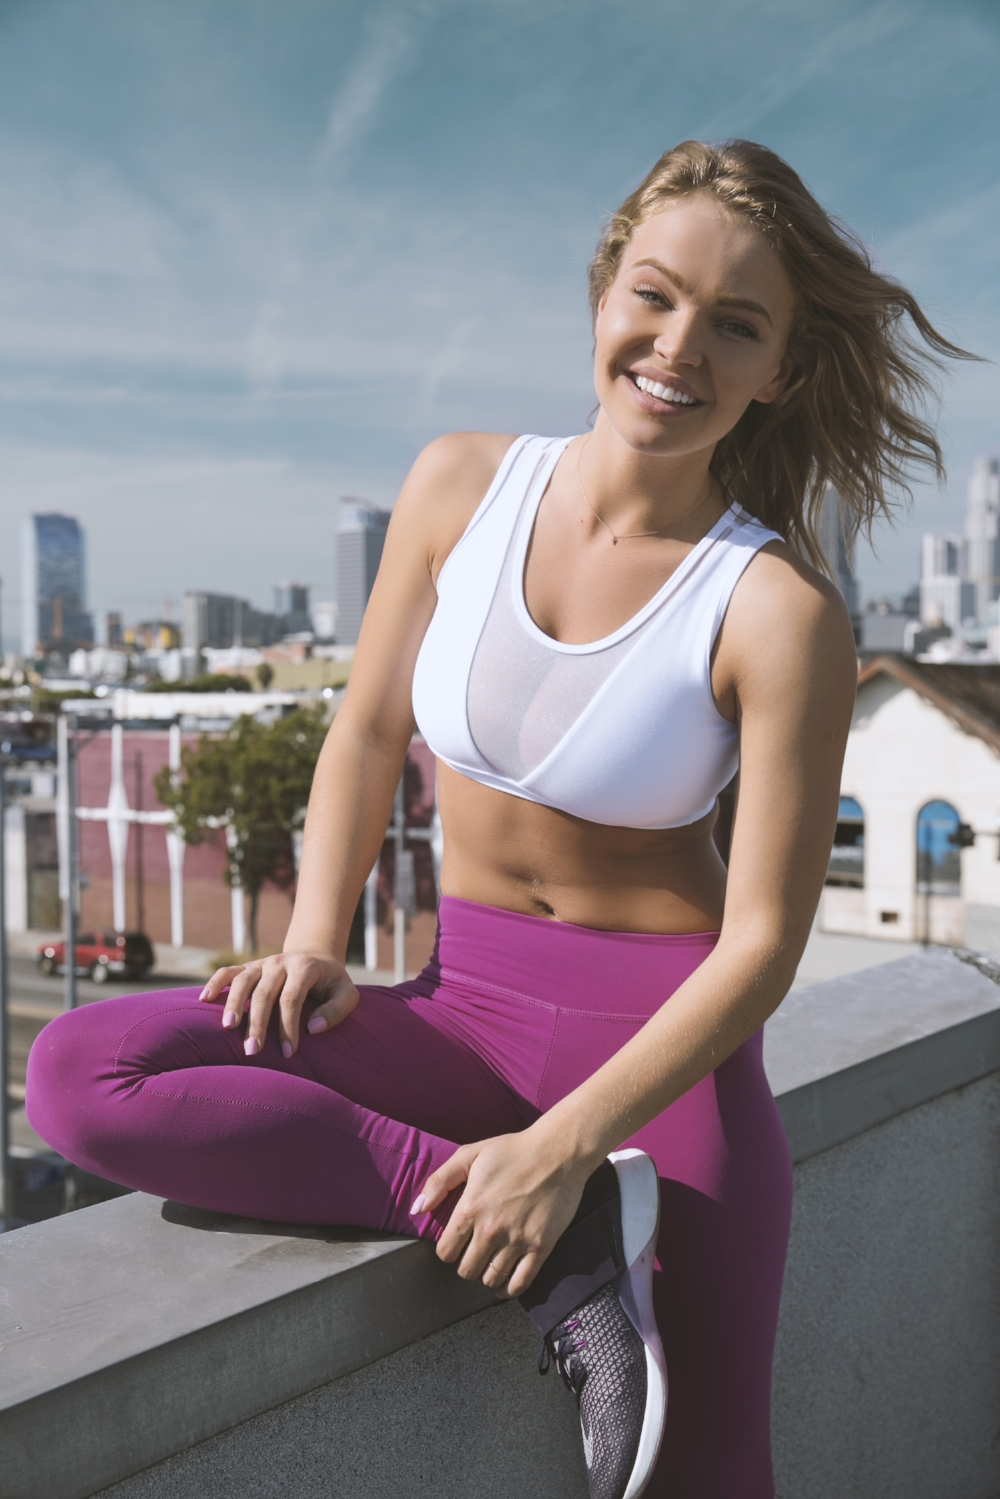 BELIEVE & ACHIEVE - J Fitness Wear Activewear helps you move with confidence wherever you go! we design for active women on the go who want to look and feel good as they transition between workout to daily lifestyle activities.